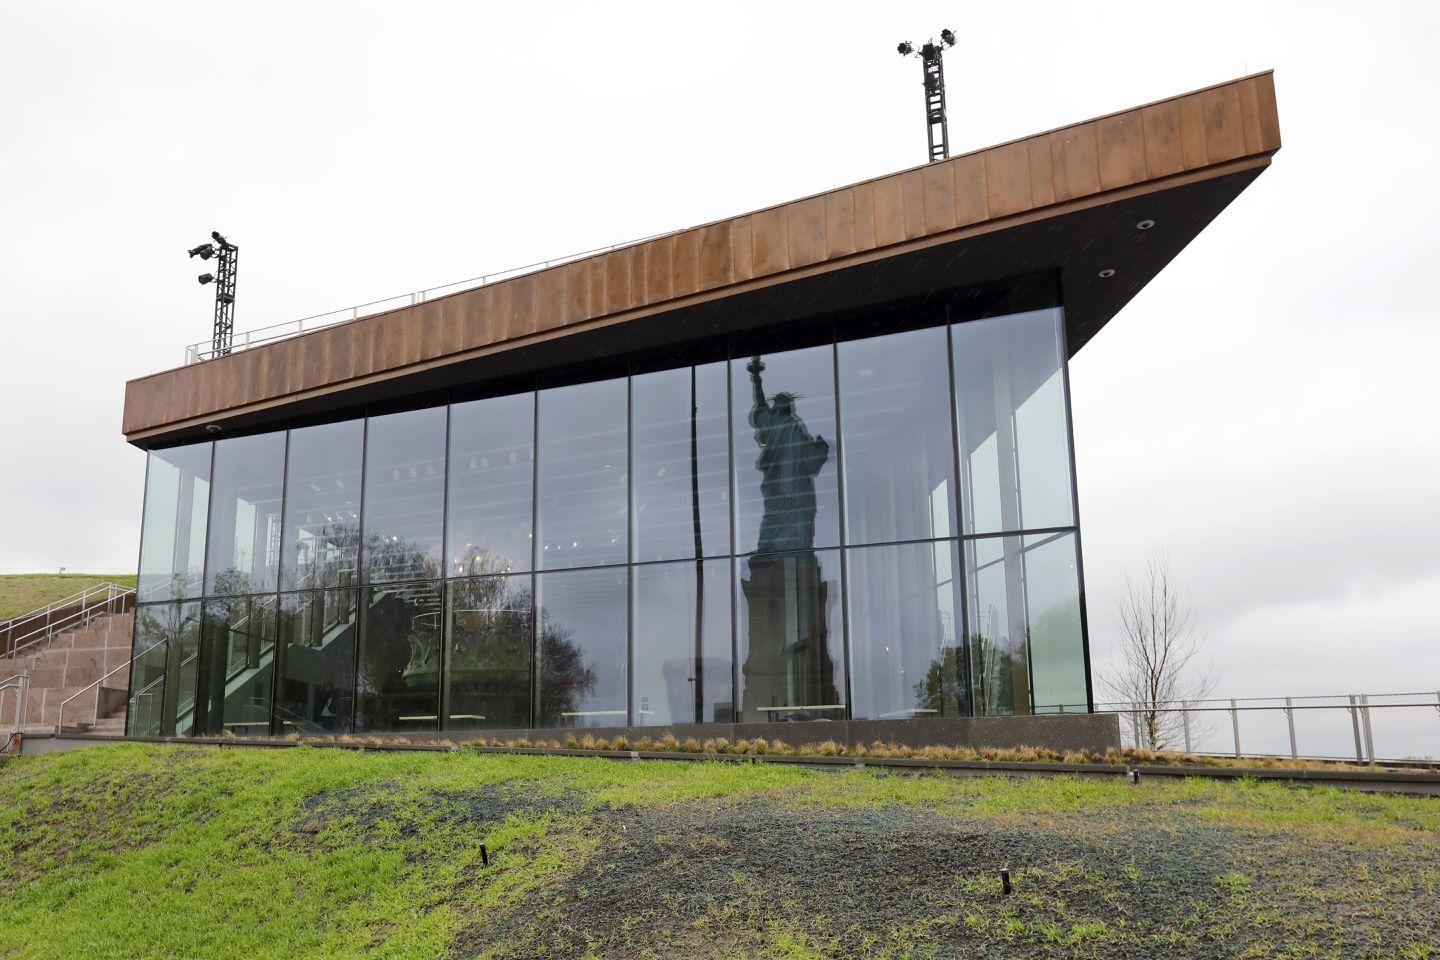 The Statue of Liberty is reflected in the windows of the new Statue of Liberty Museum.